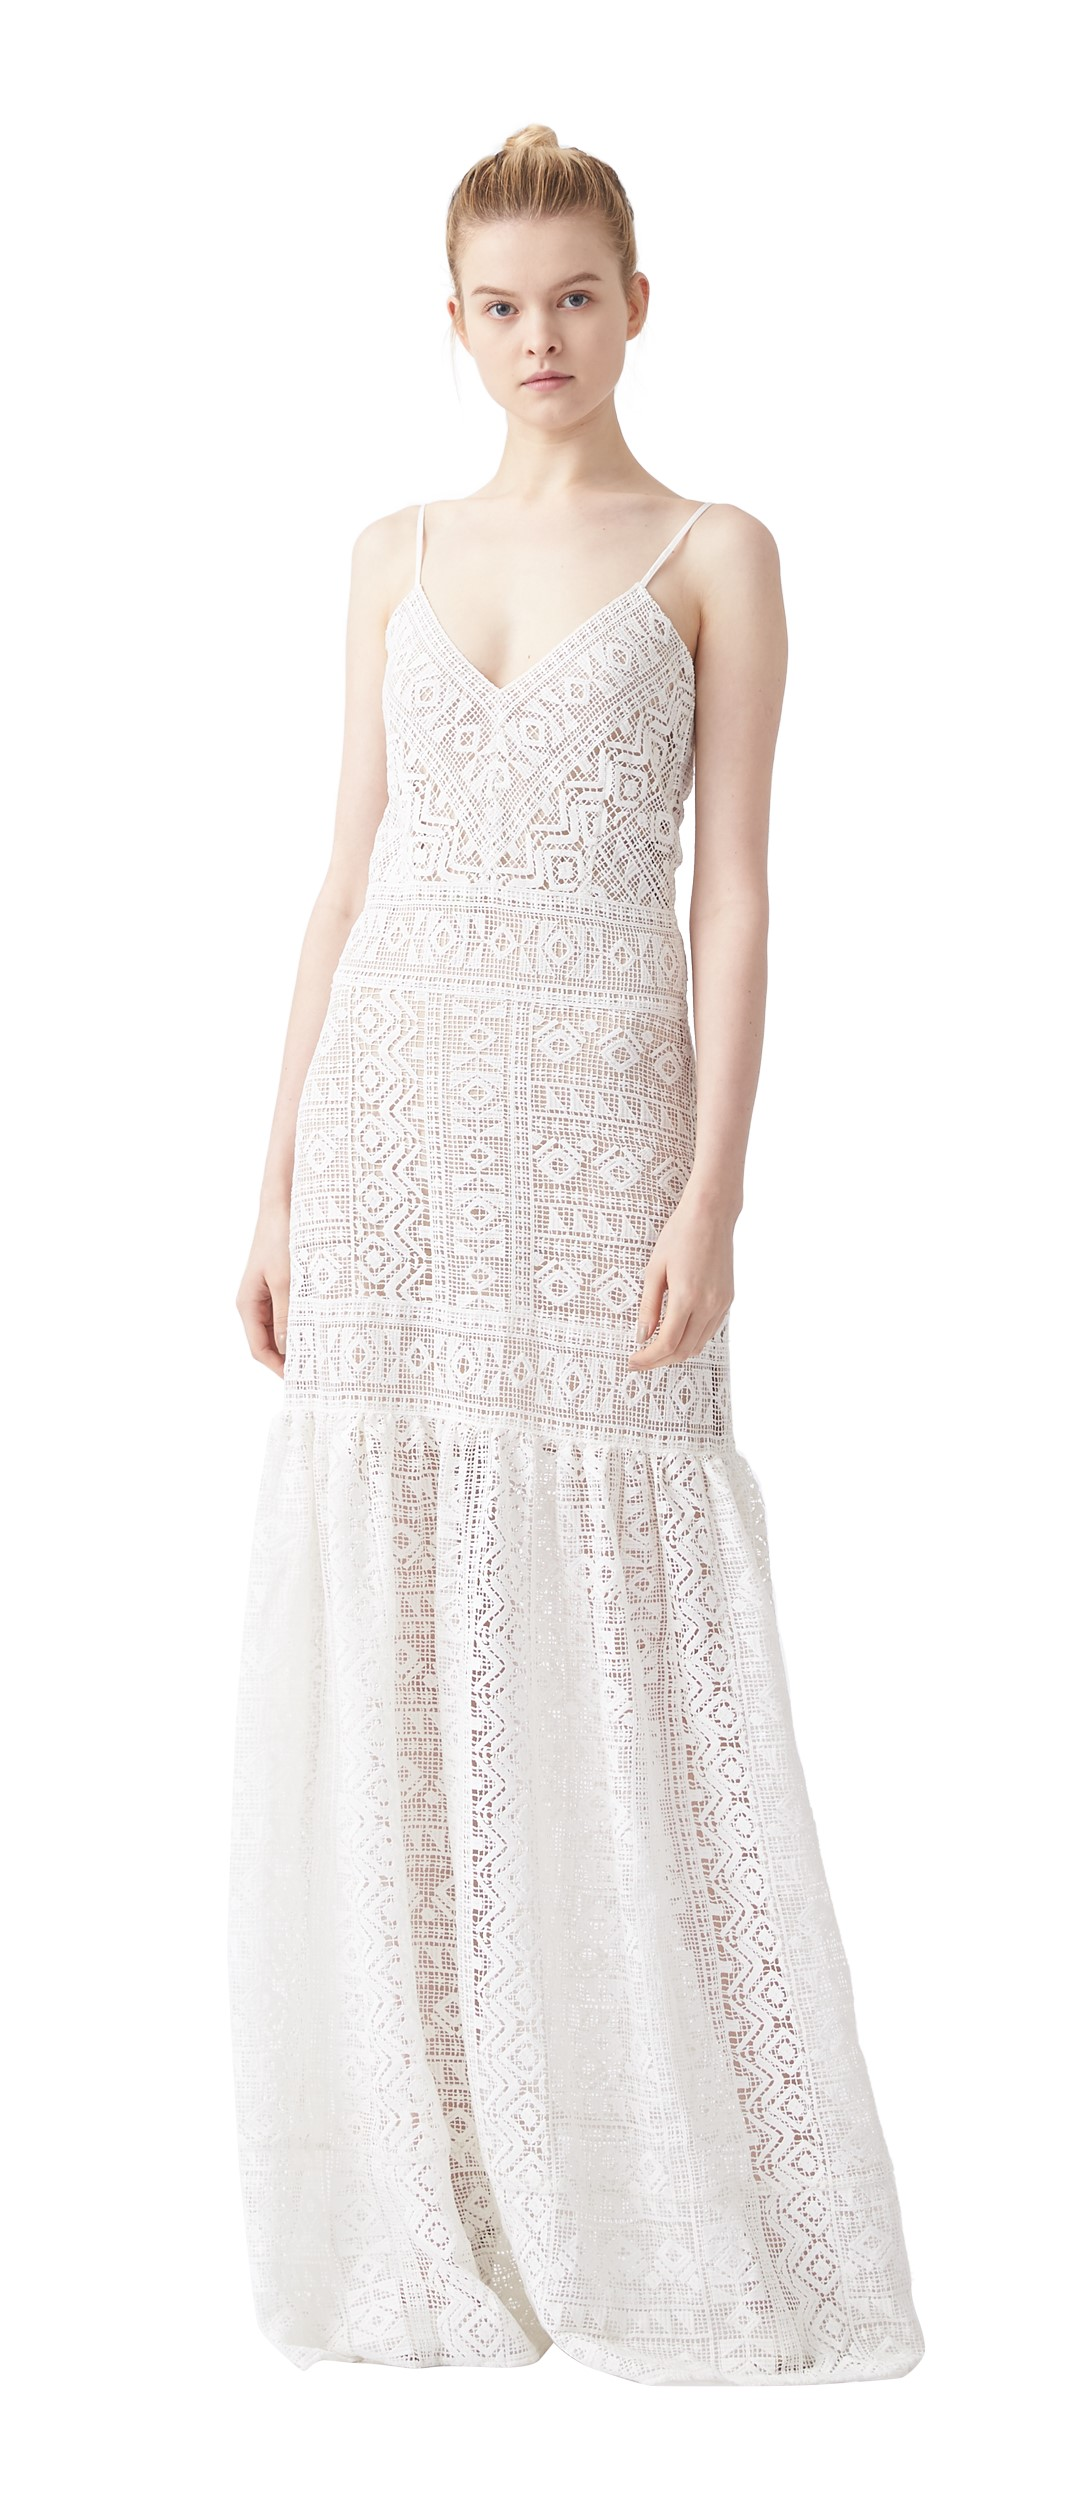 Natalie Crochet Maxi Dress